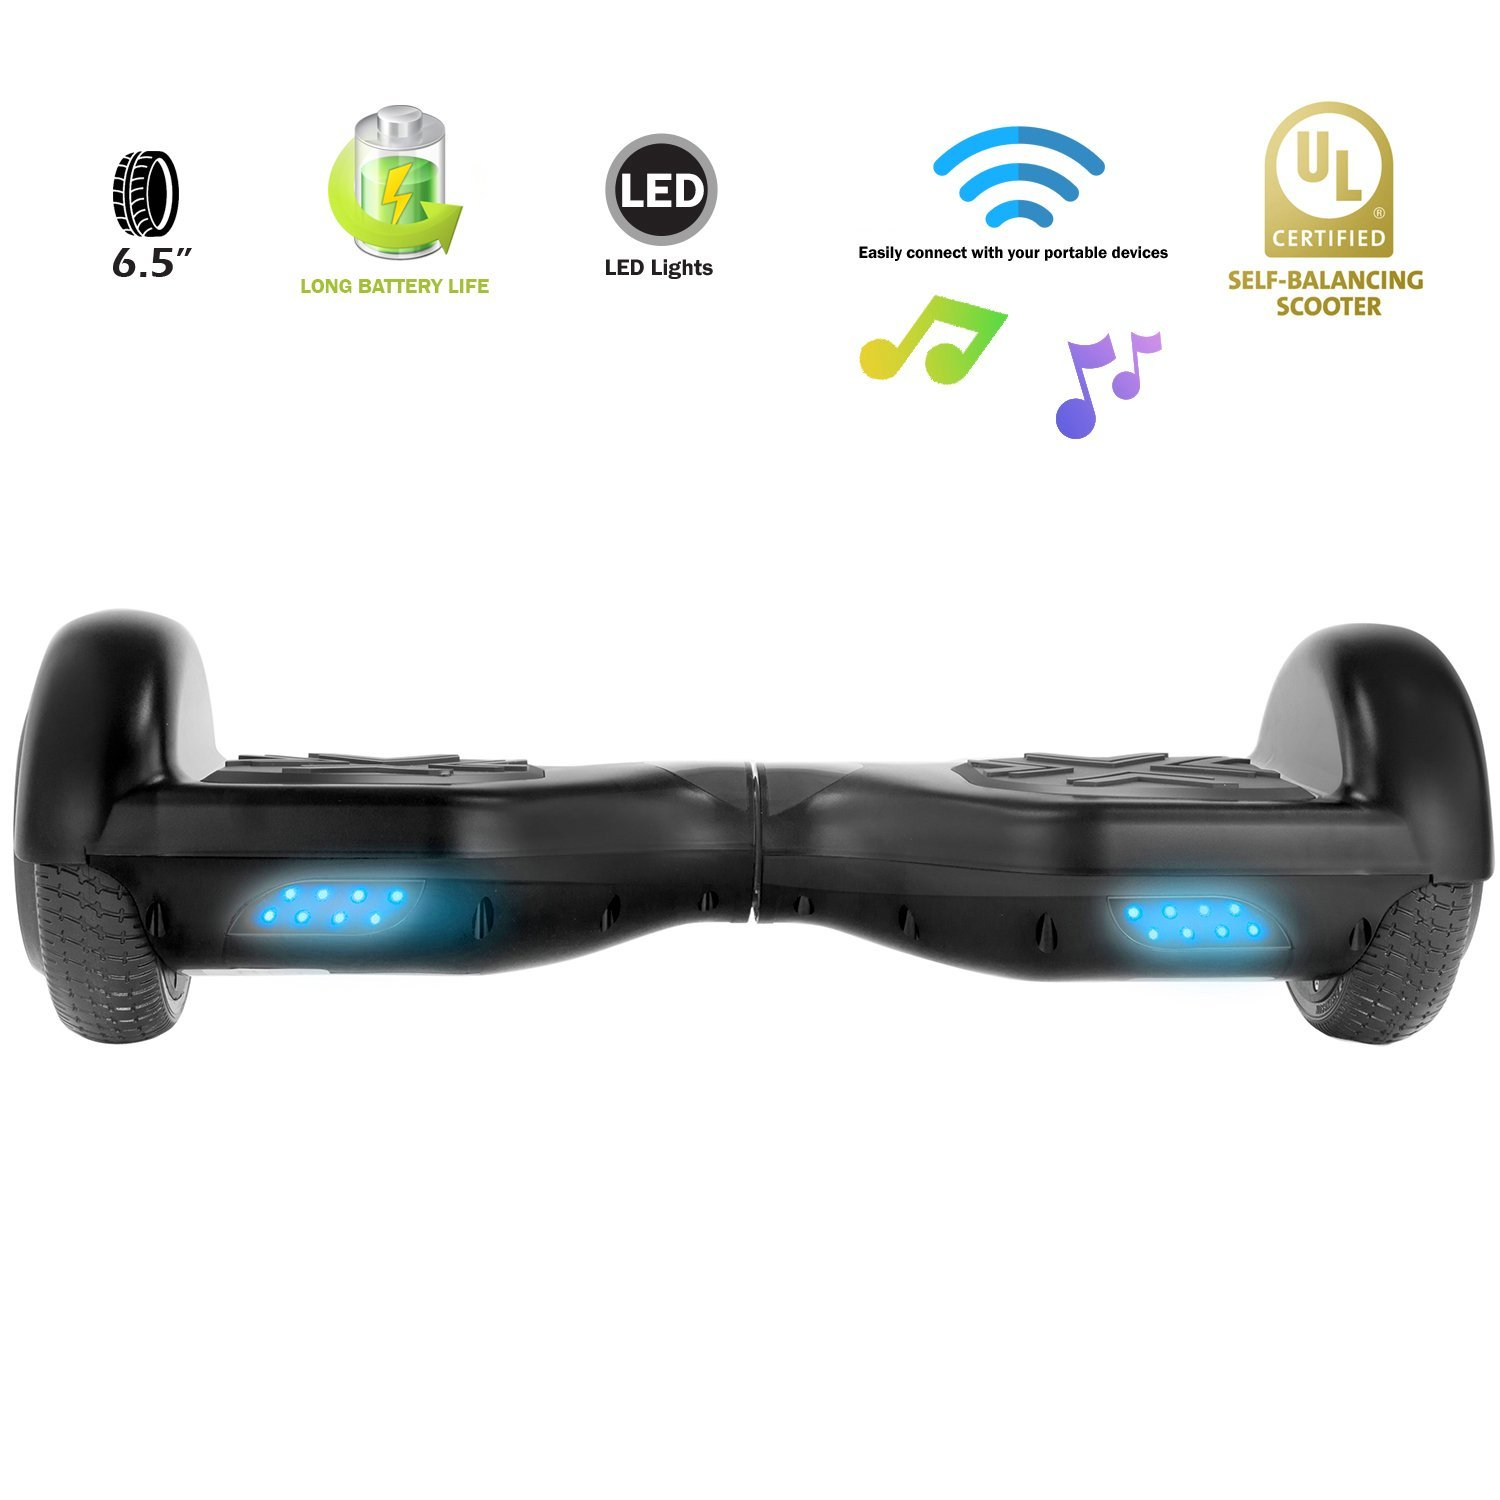 XPRIT Hoverboard w/Bluetooth Speaker (Black) by XPRIT (Image #4)